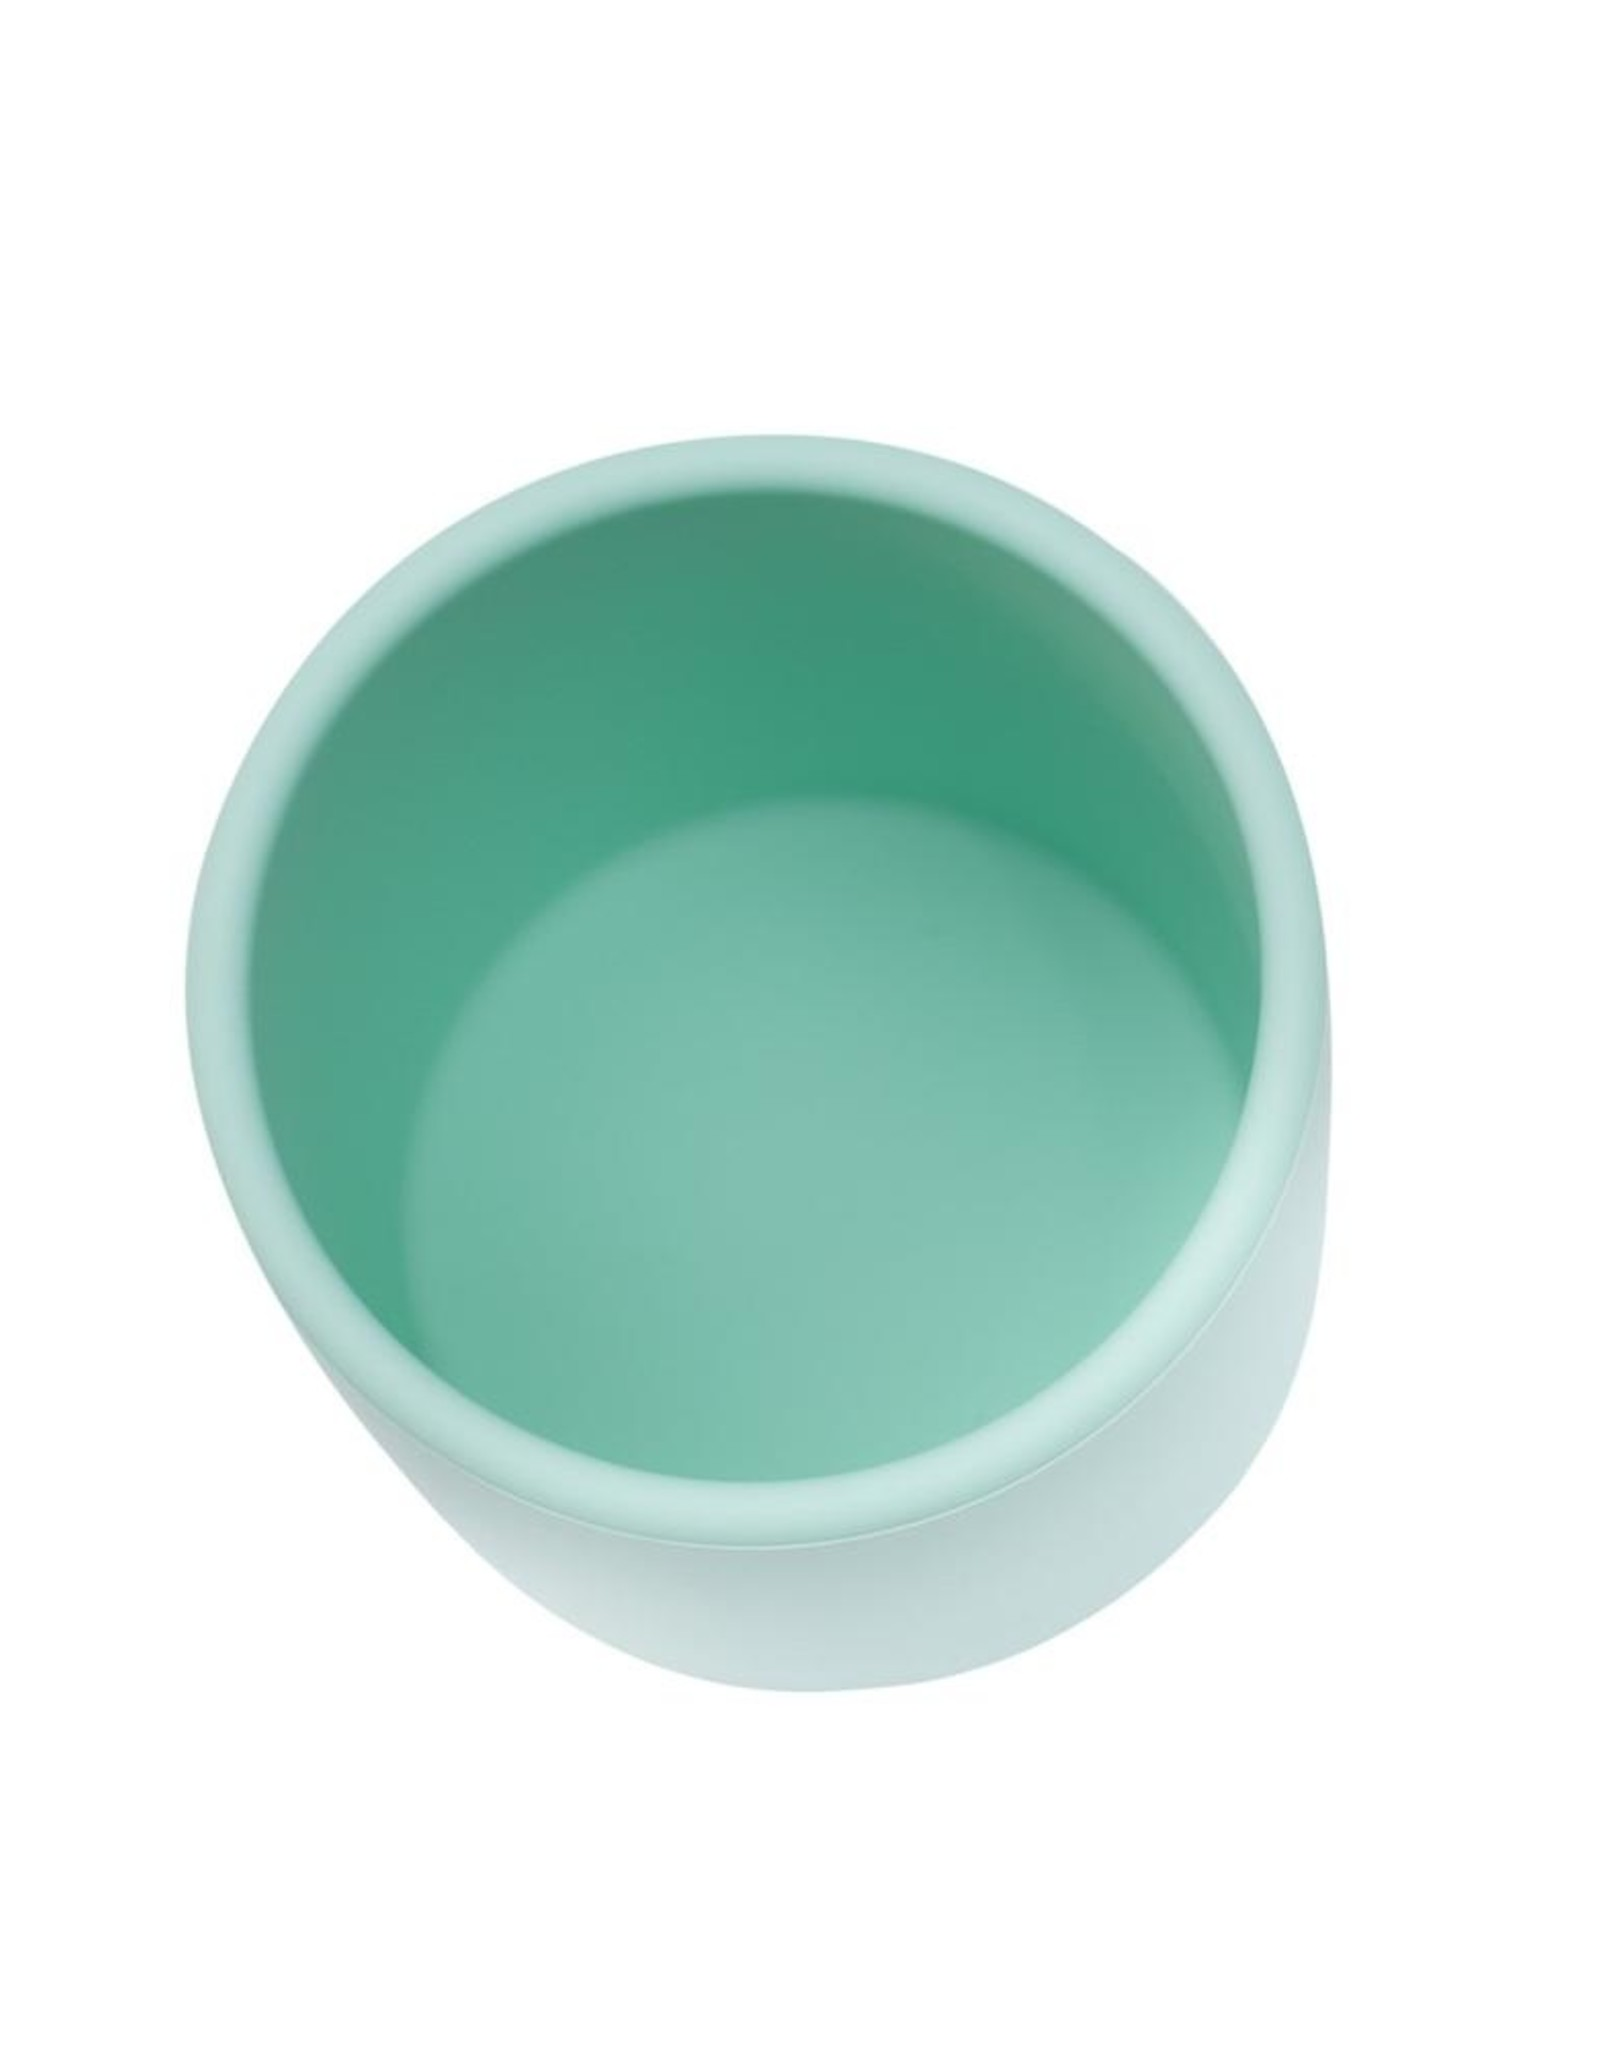 We Might Be Tiny Grip cup - Minty green